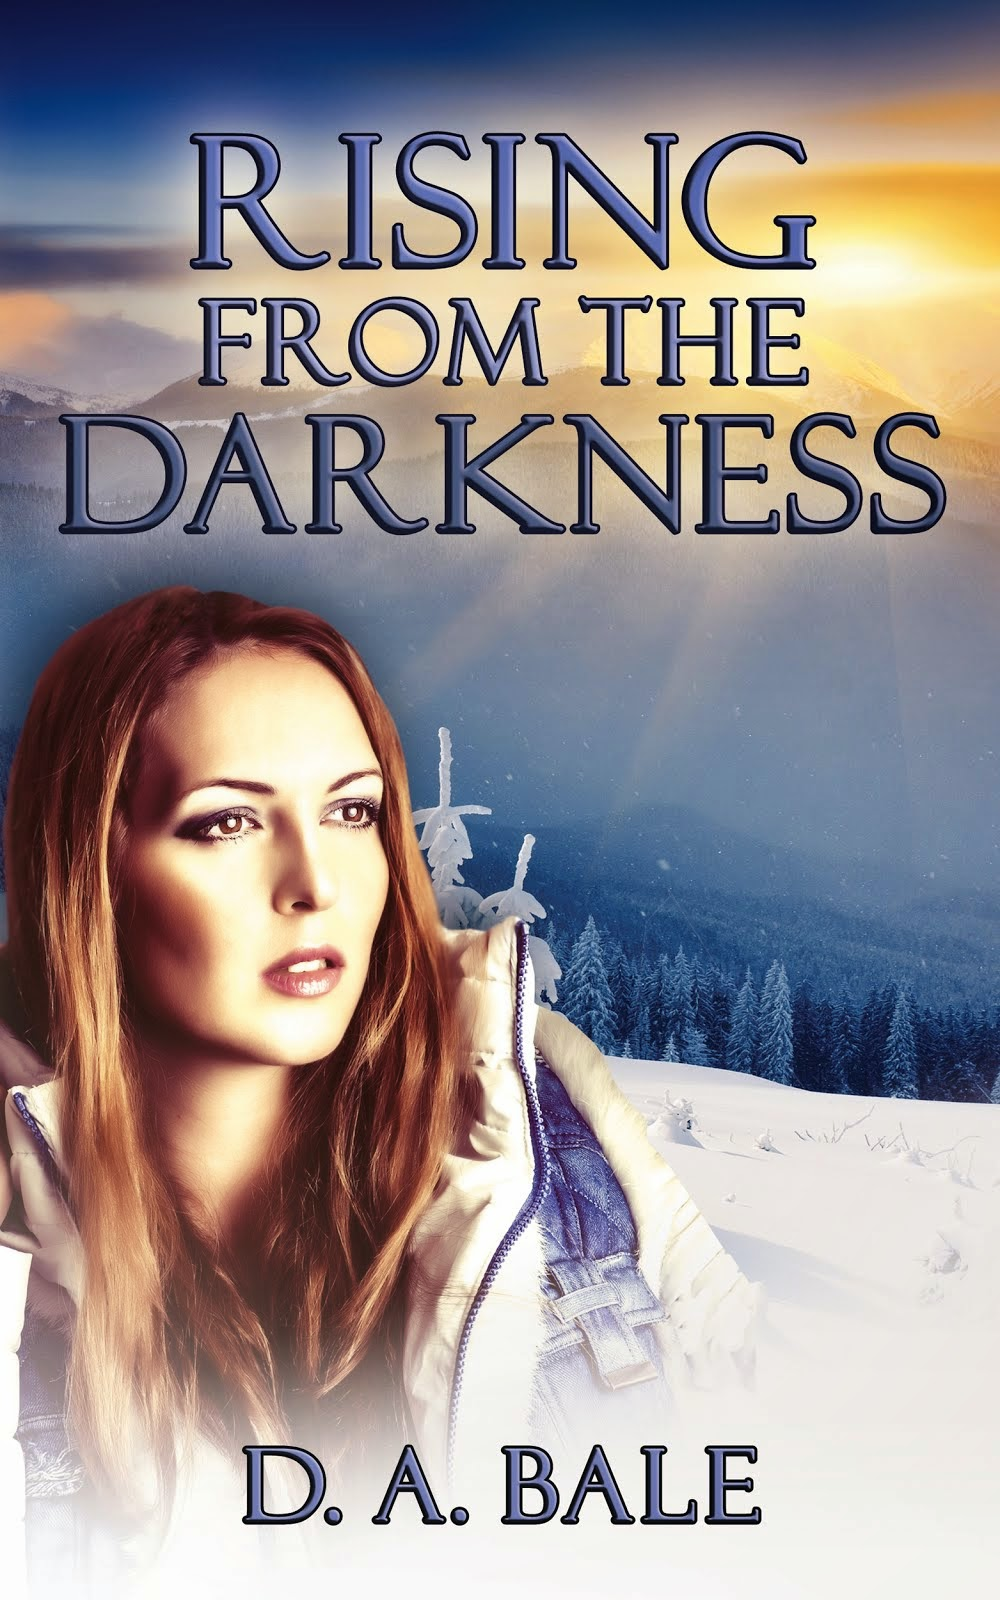 Purchase Rising from the Darkness on Amazon